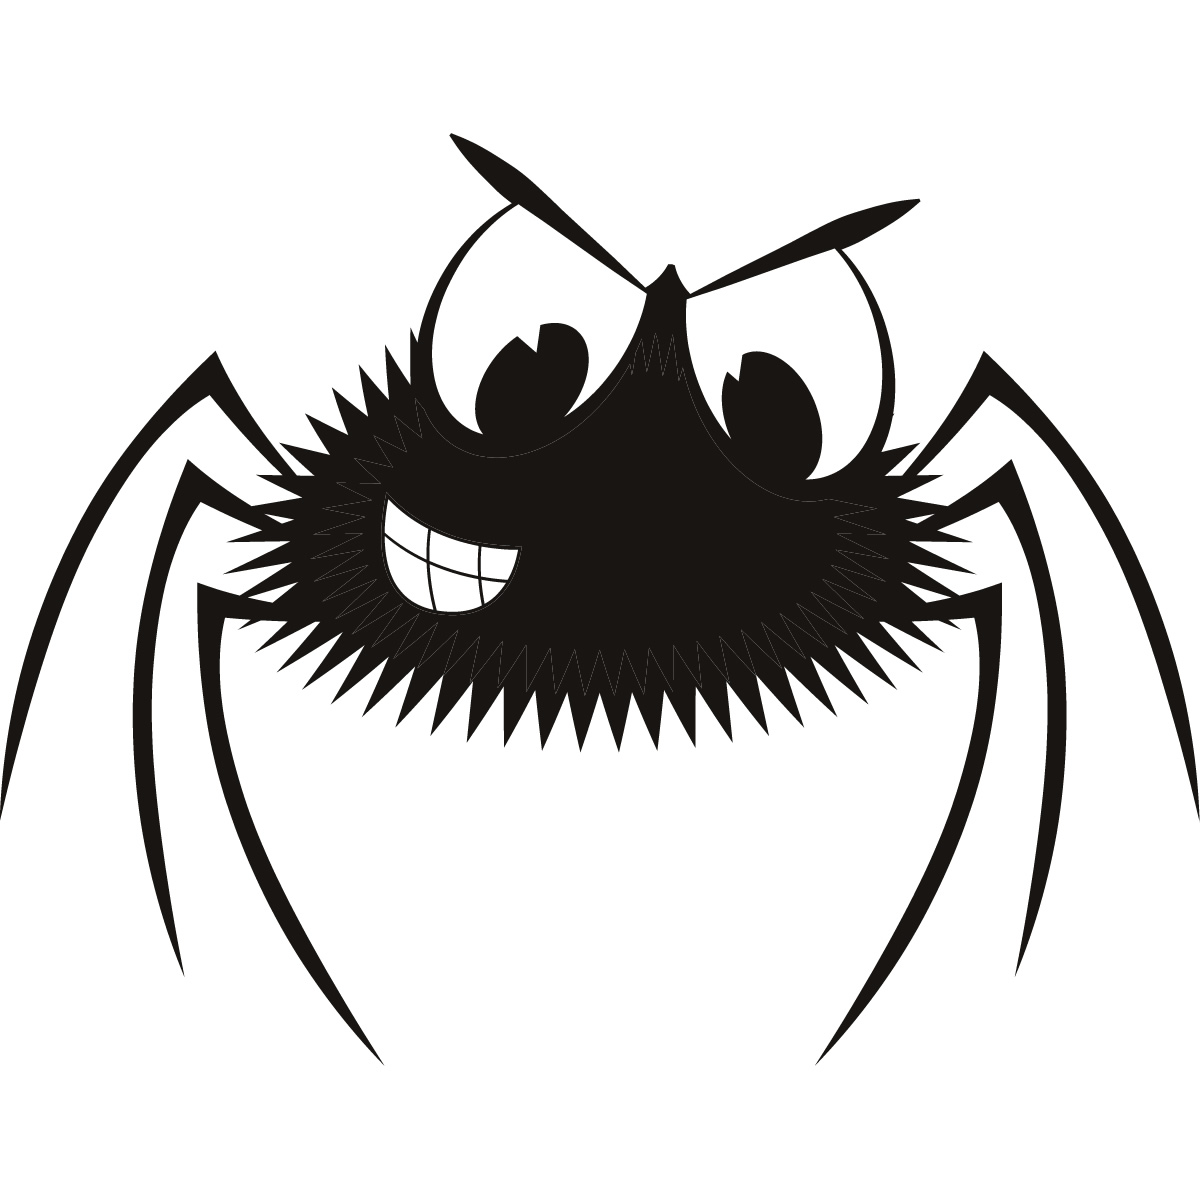 http://iconwallstickers.co.uk/media/catalog/product/2-Jpegs/cartoon-spider-wall-art-sticker-27.jpg